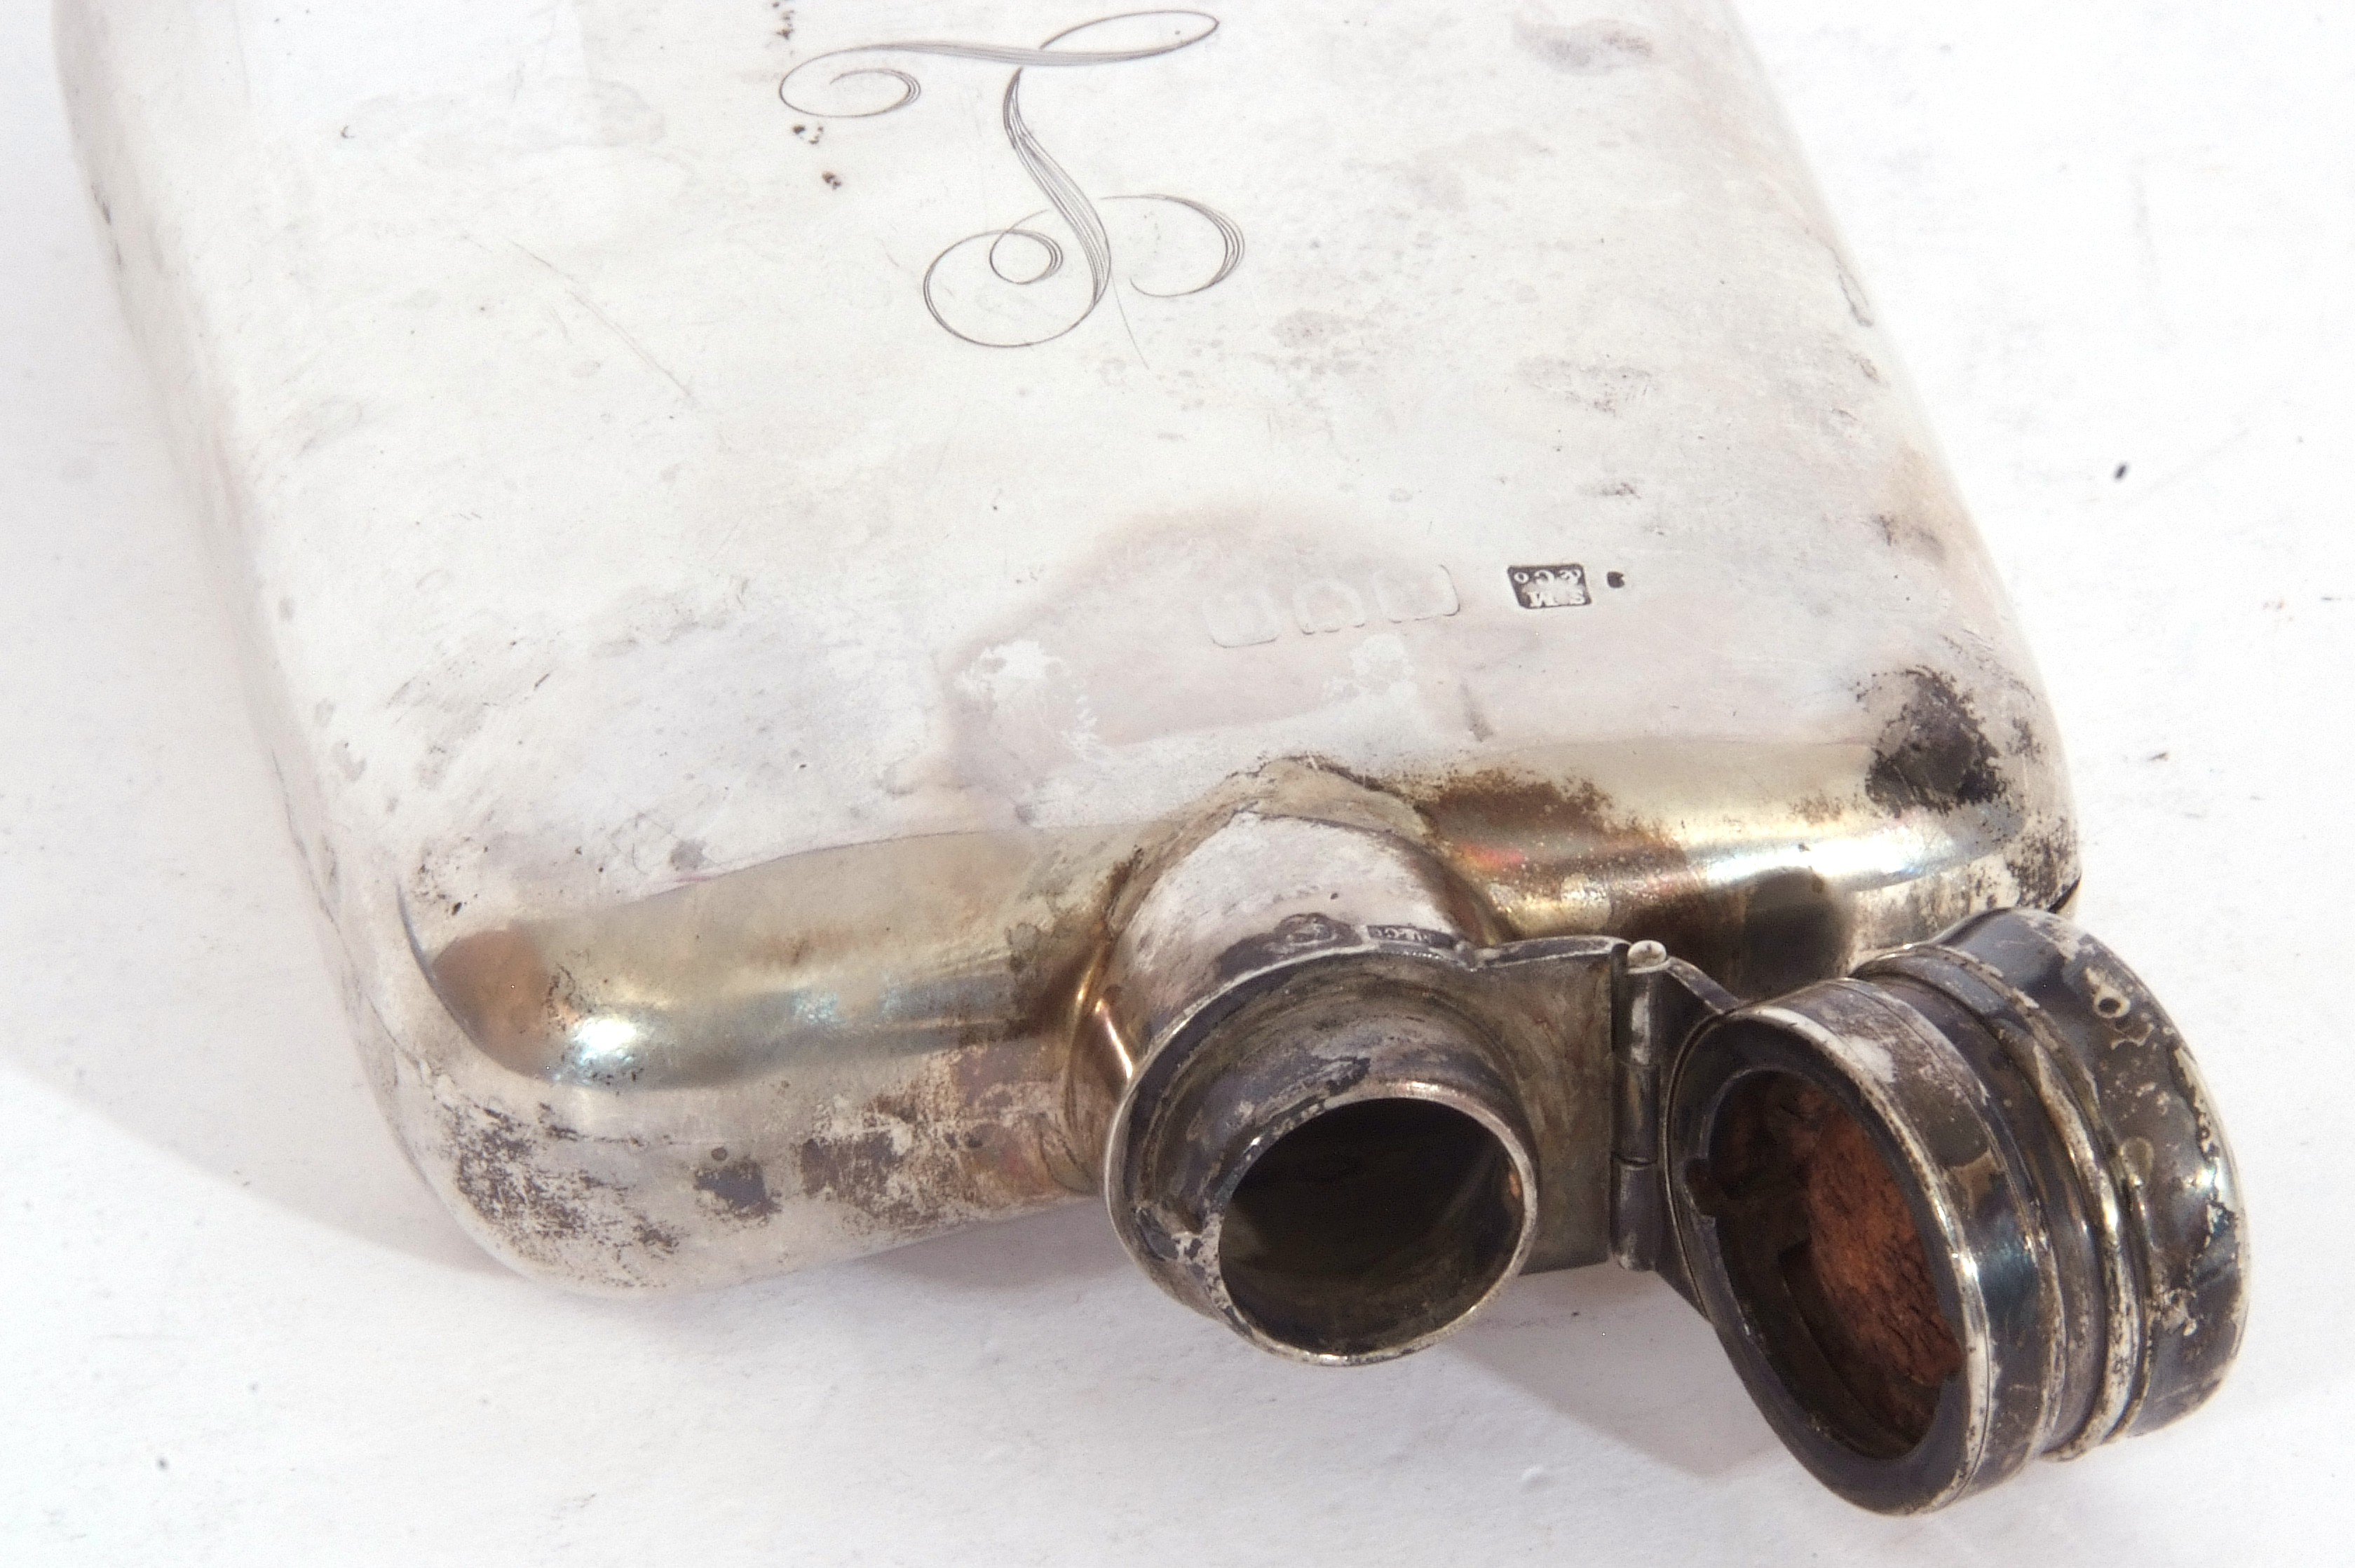 Early 20th century silver hip flask, circa 1920, of rectangular curved form with rounded corners, - Image 4 of 5